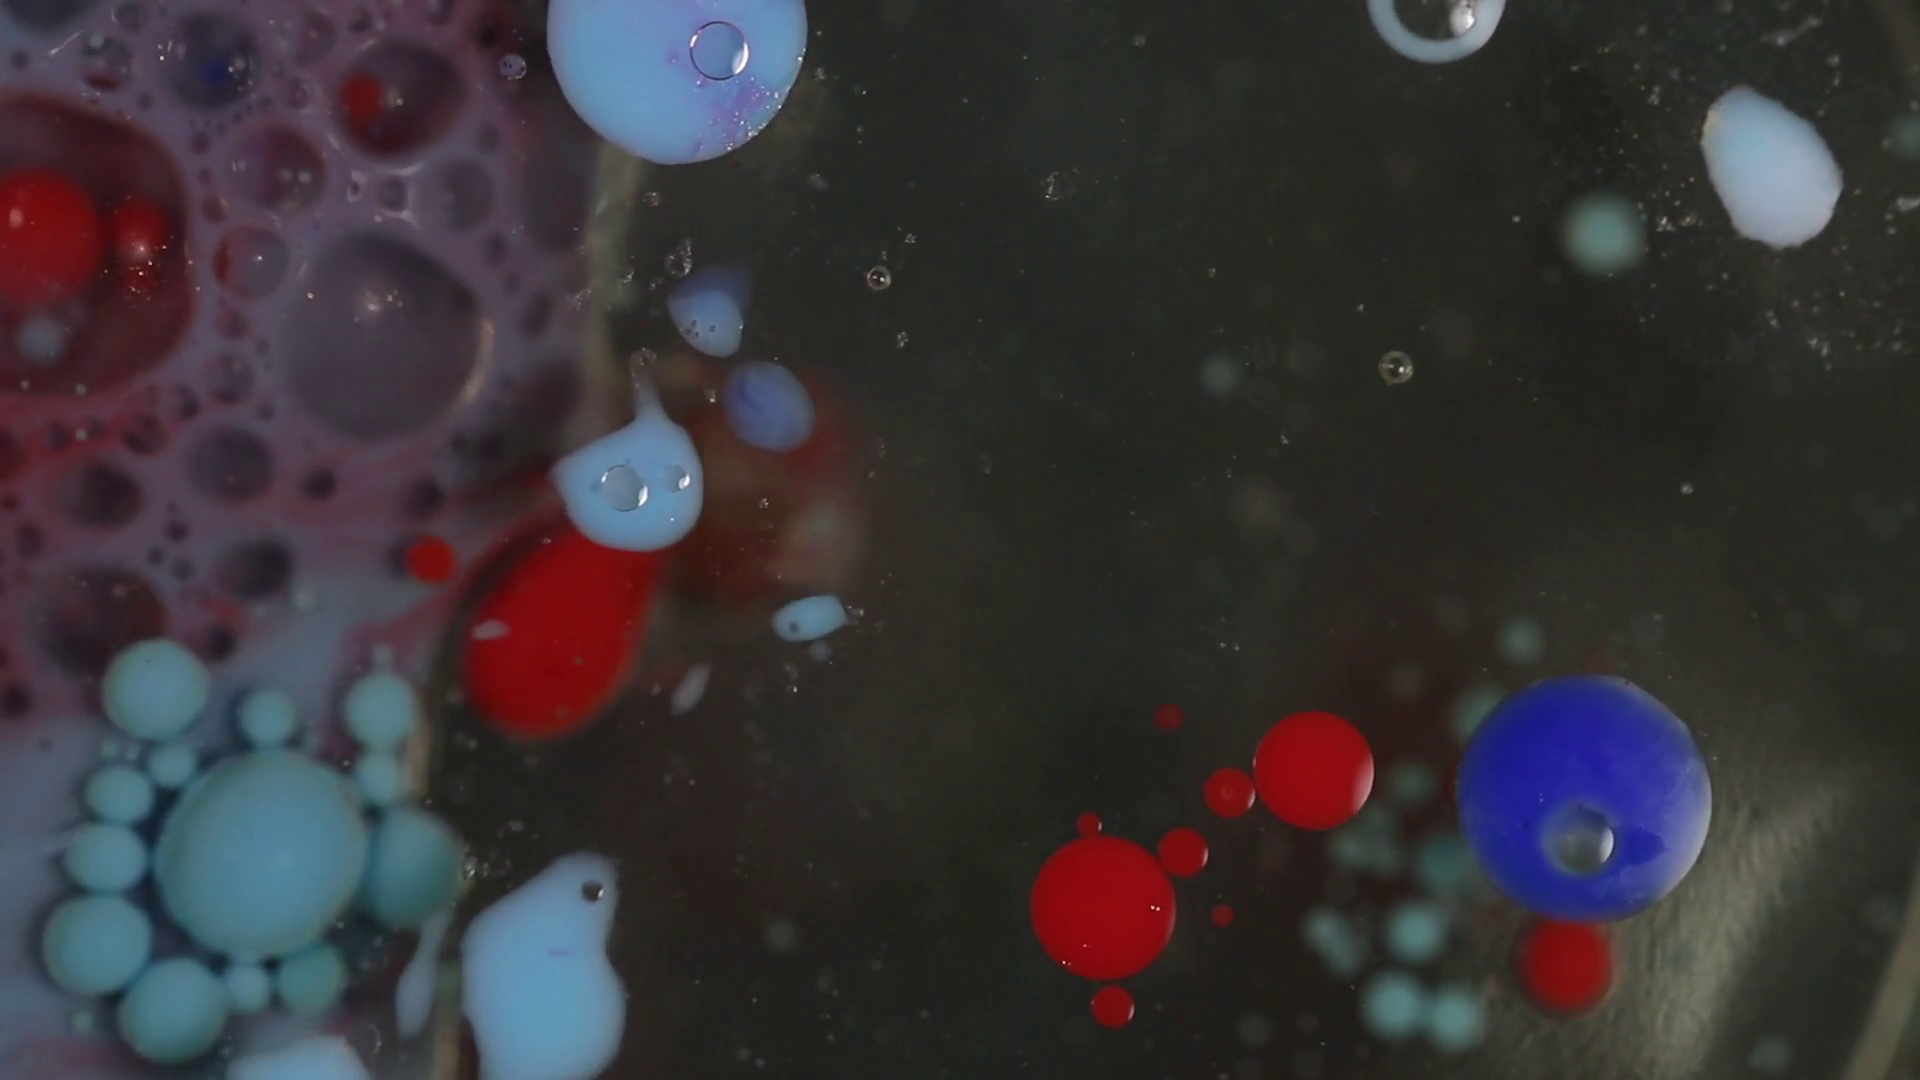 Cool shot of blue, red, and white liquids draining down the sink ...